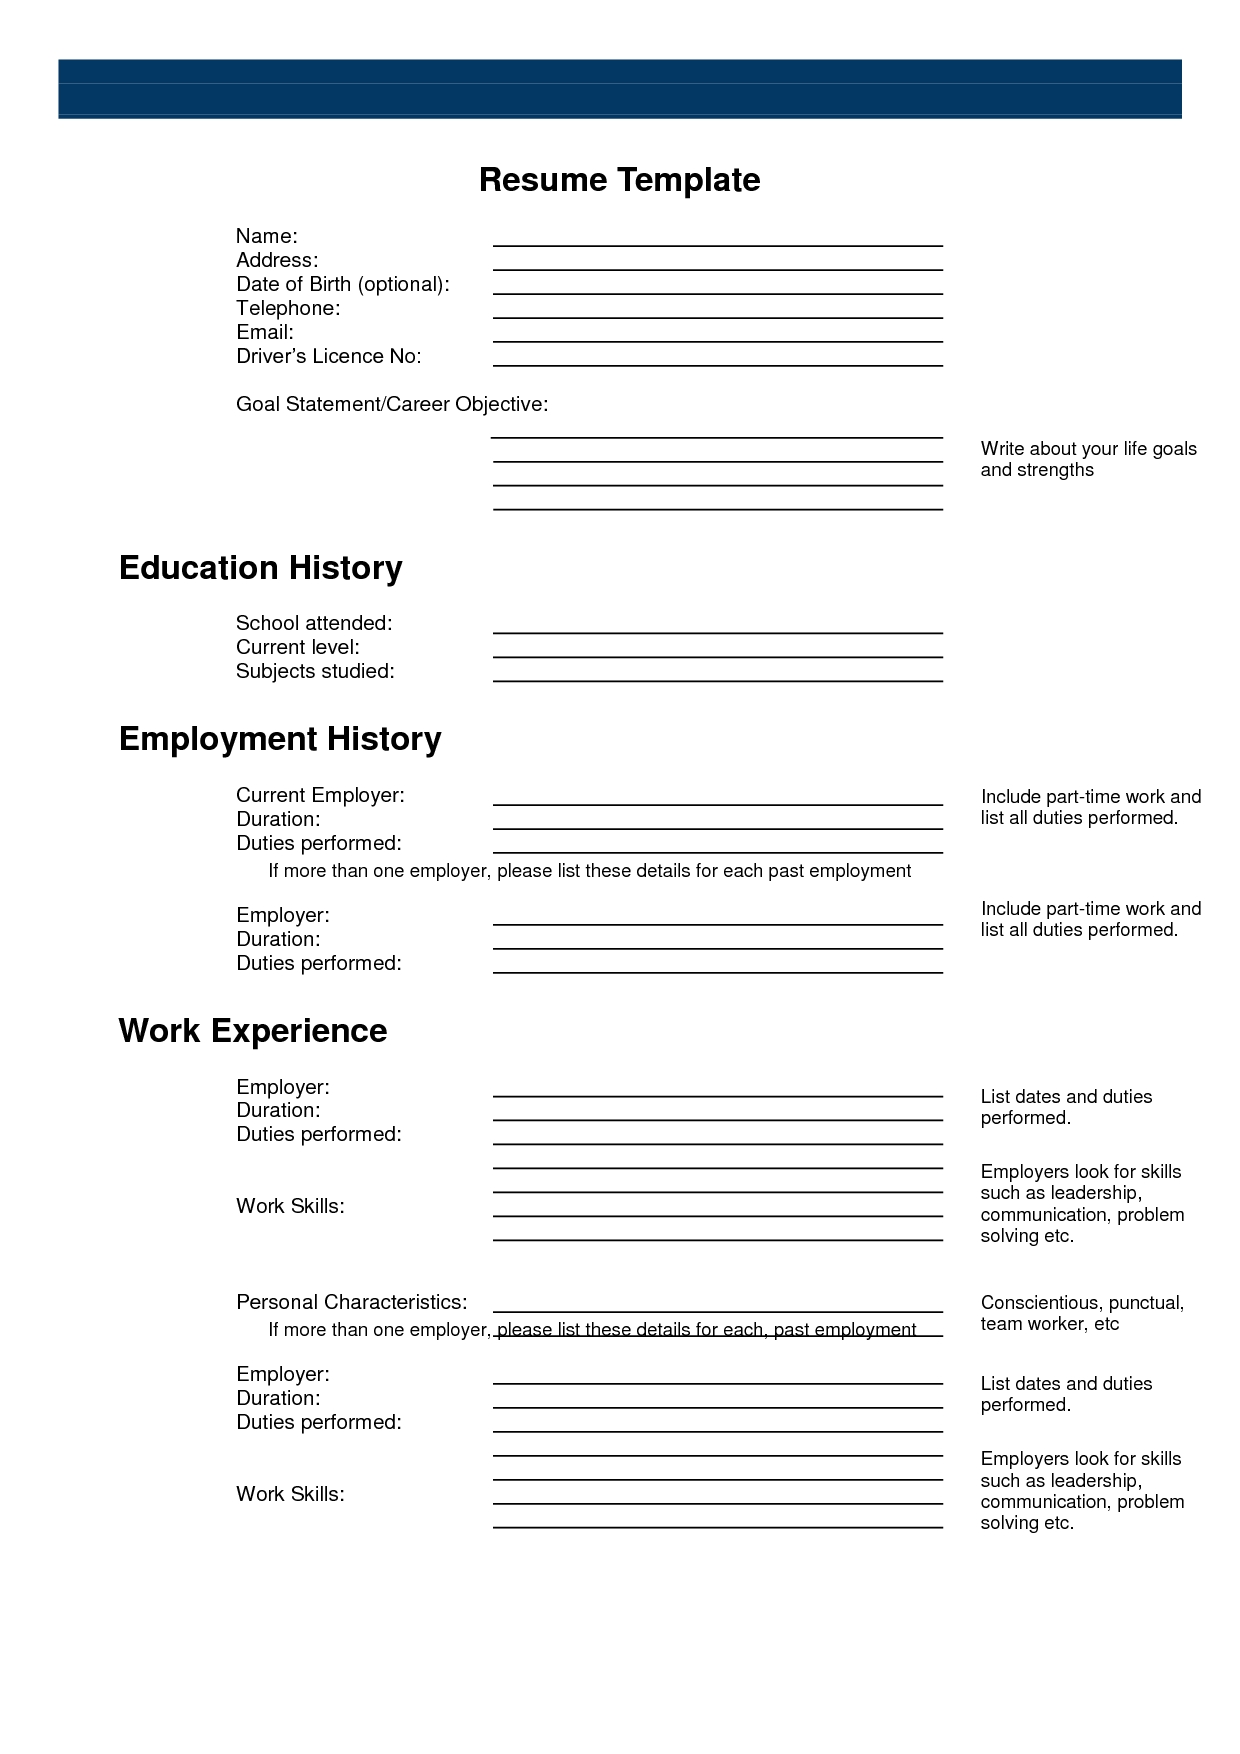 free printable resume template::Printable Resume CV Templates & Format Sample